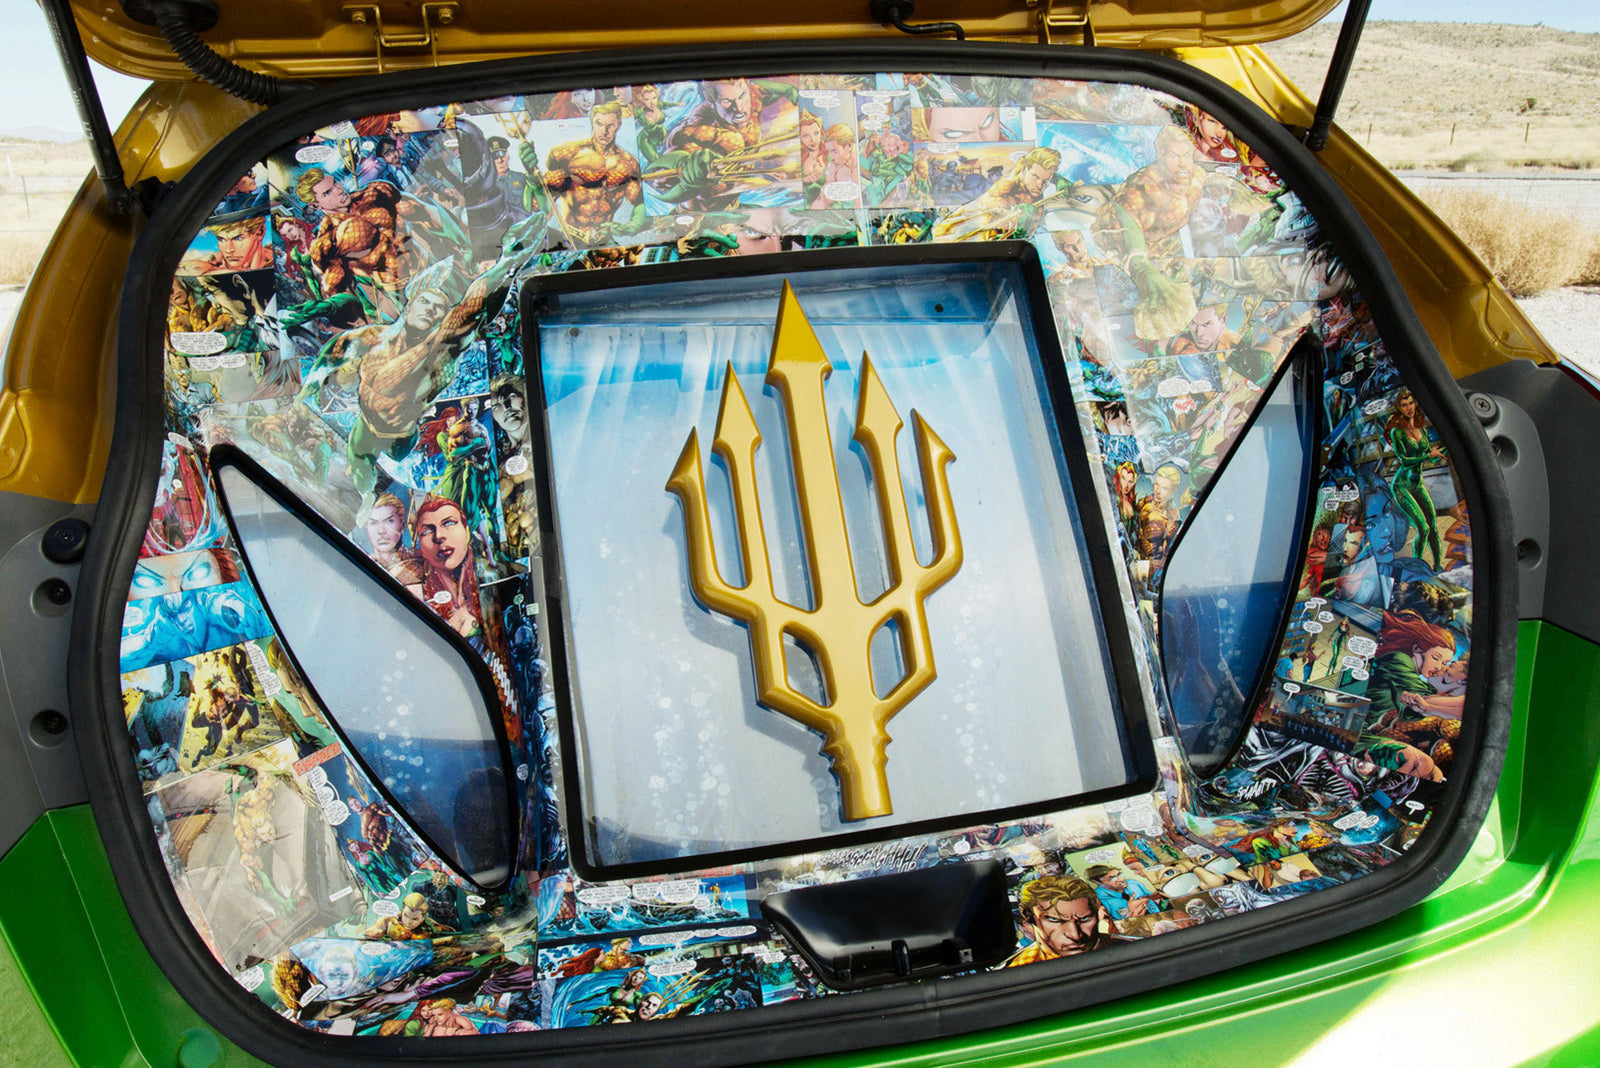 Forth Silde: SEMA 2012 Kia 5-Door Rio Aquaman - Trunk